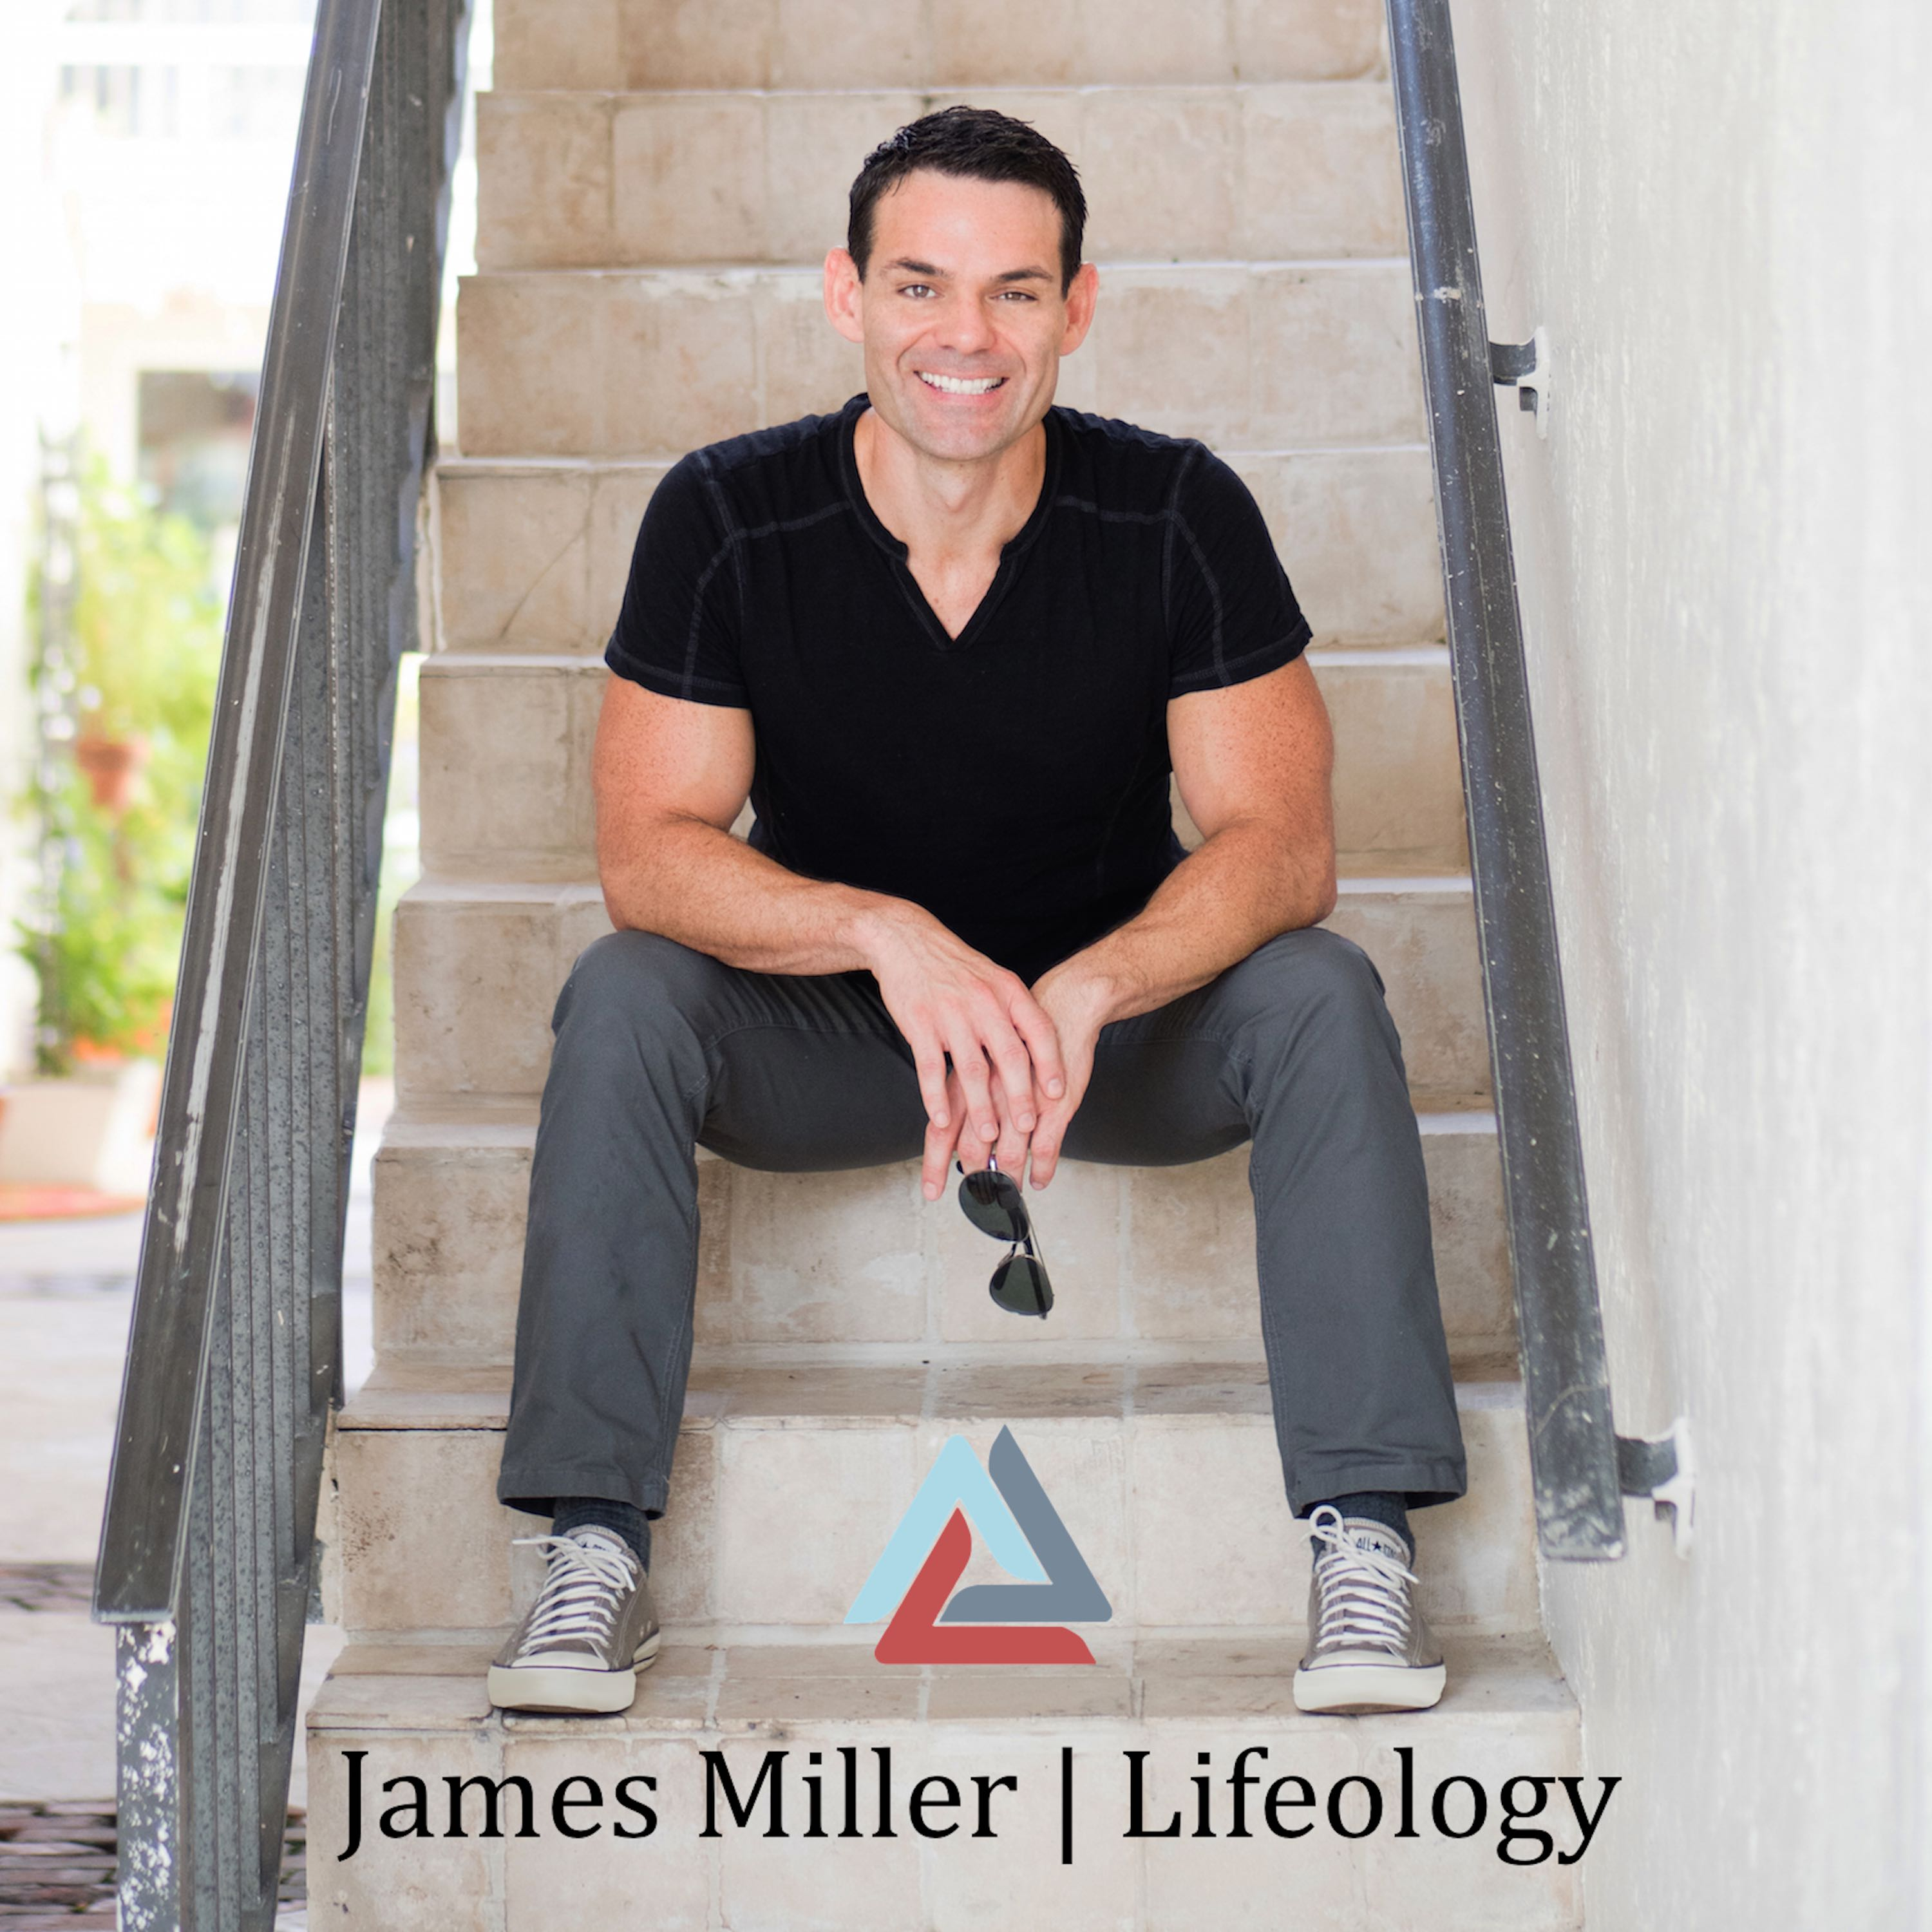 Listen to my interview on Lifeology with James Miller